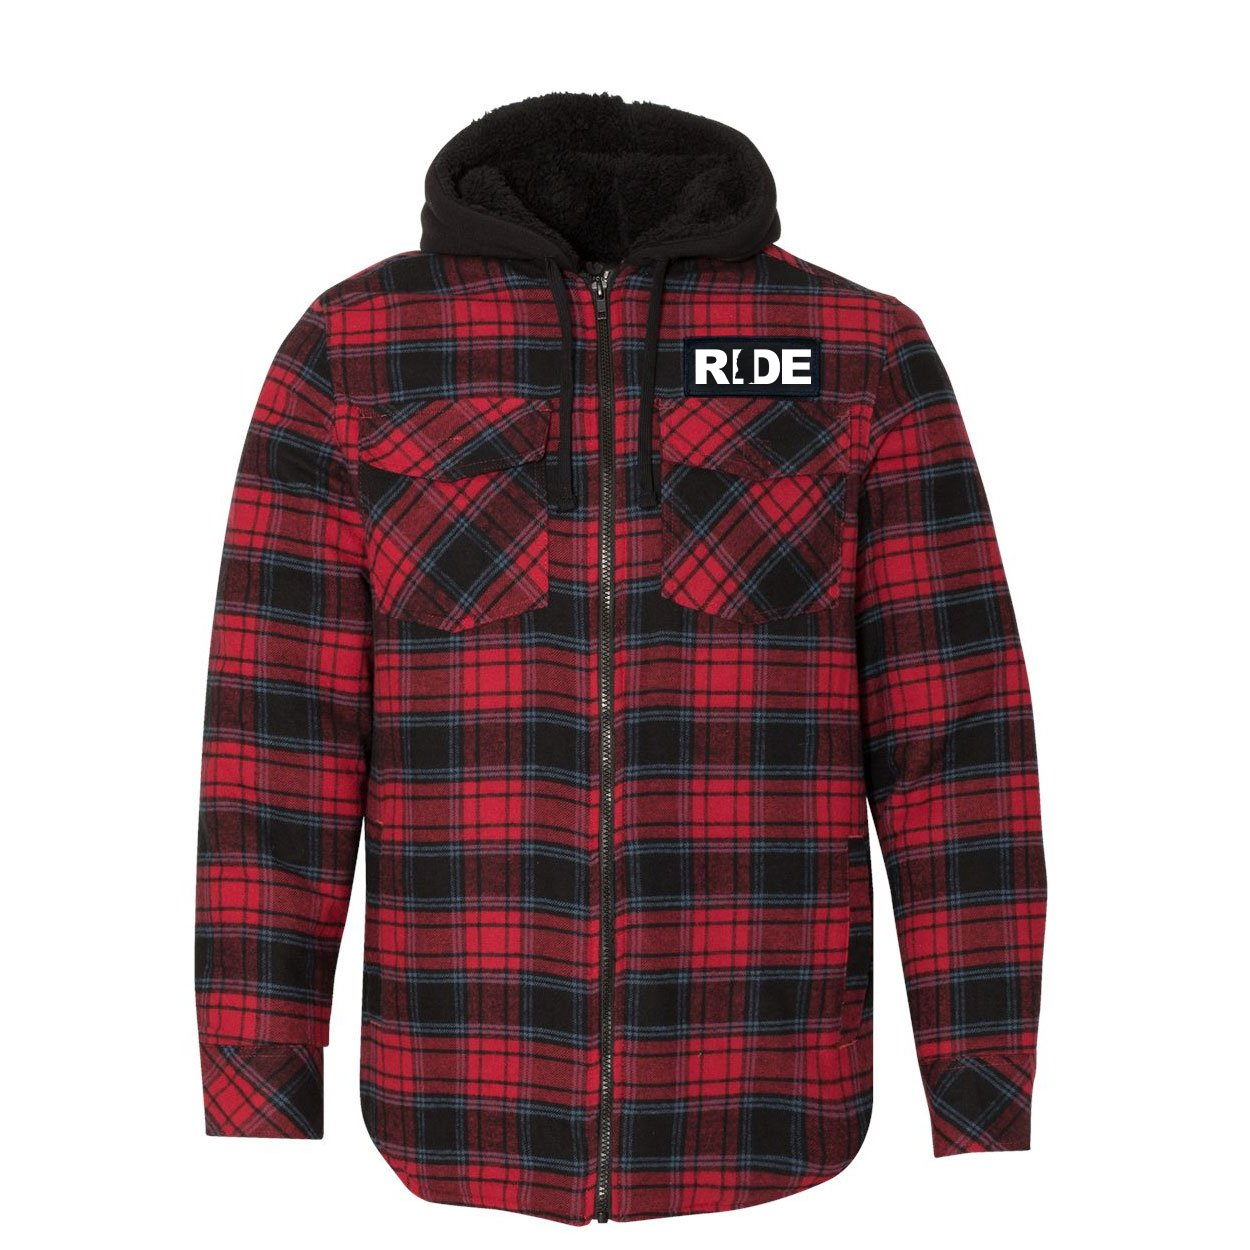 Ride Mississippi Classic Unisex Full Zip Woven Patch Hooded Flannel Jacket Red/Black Buffalo (White Logo)